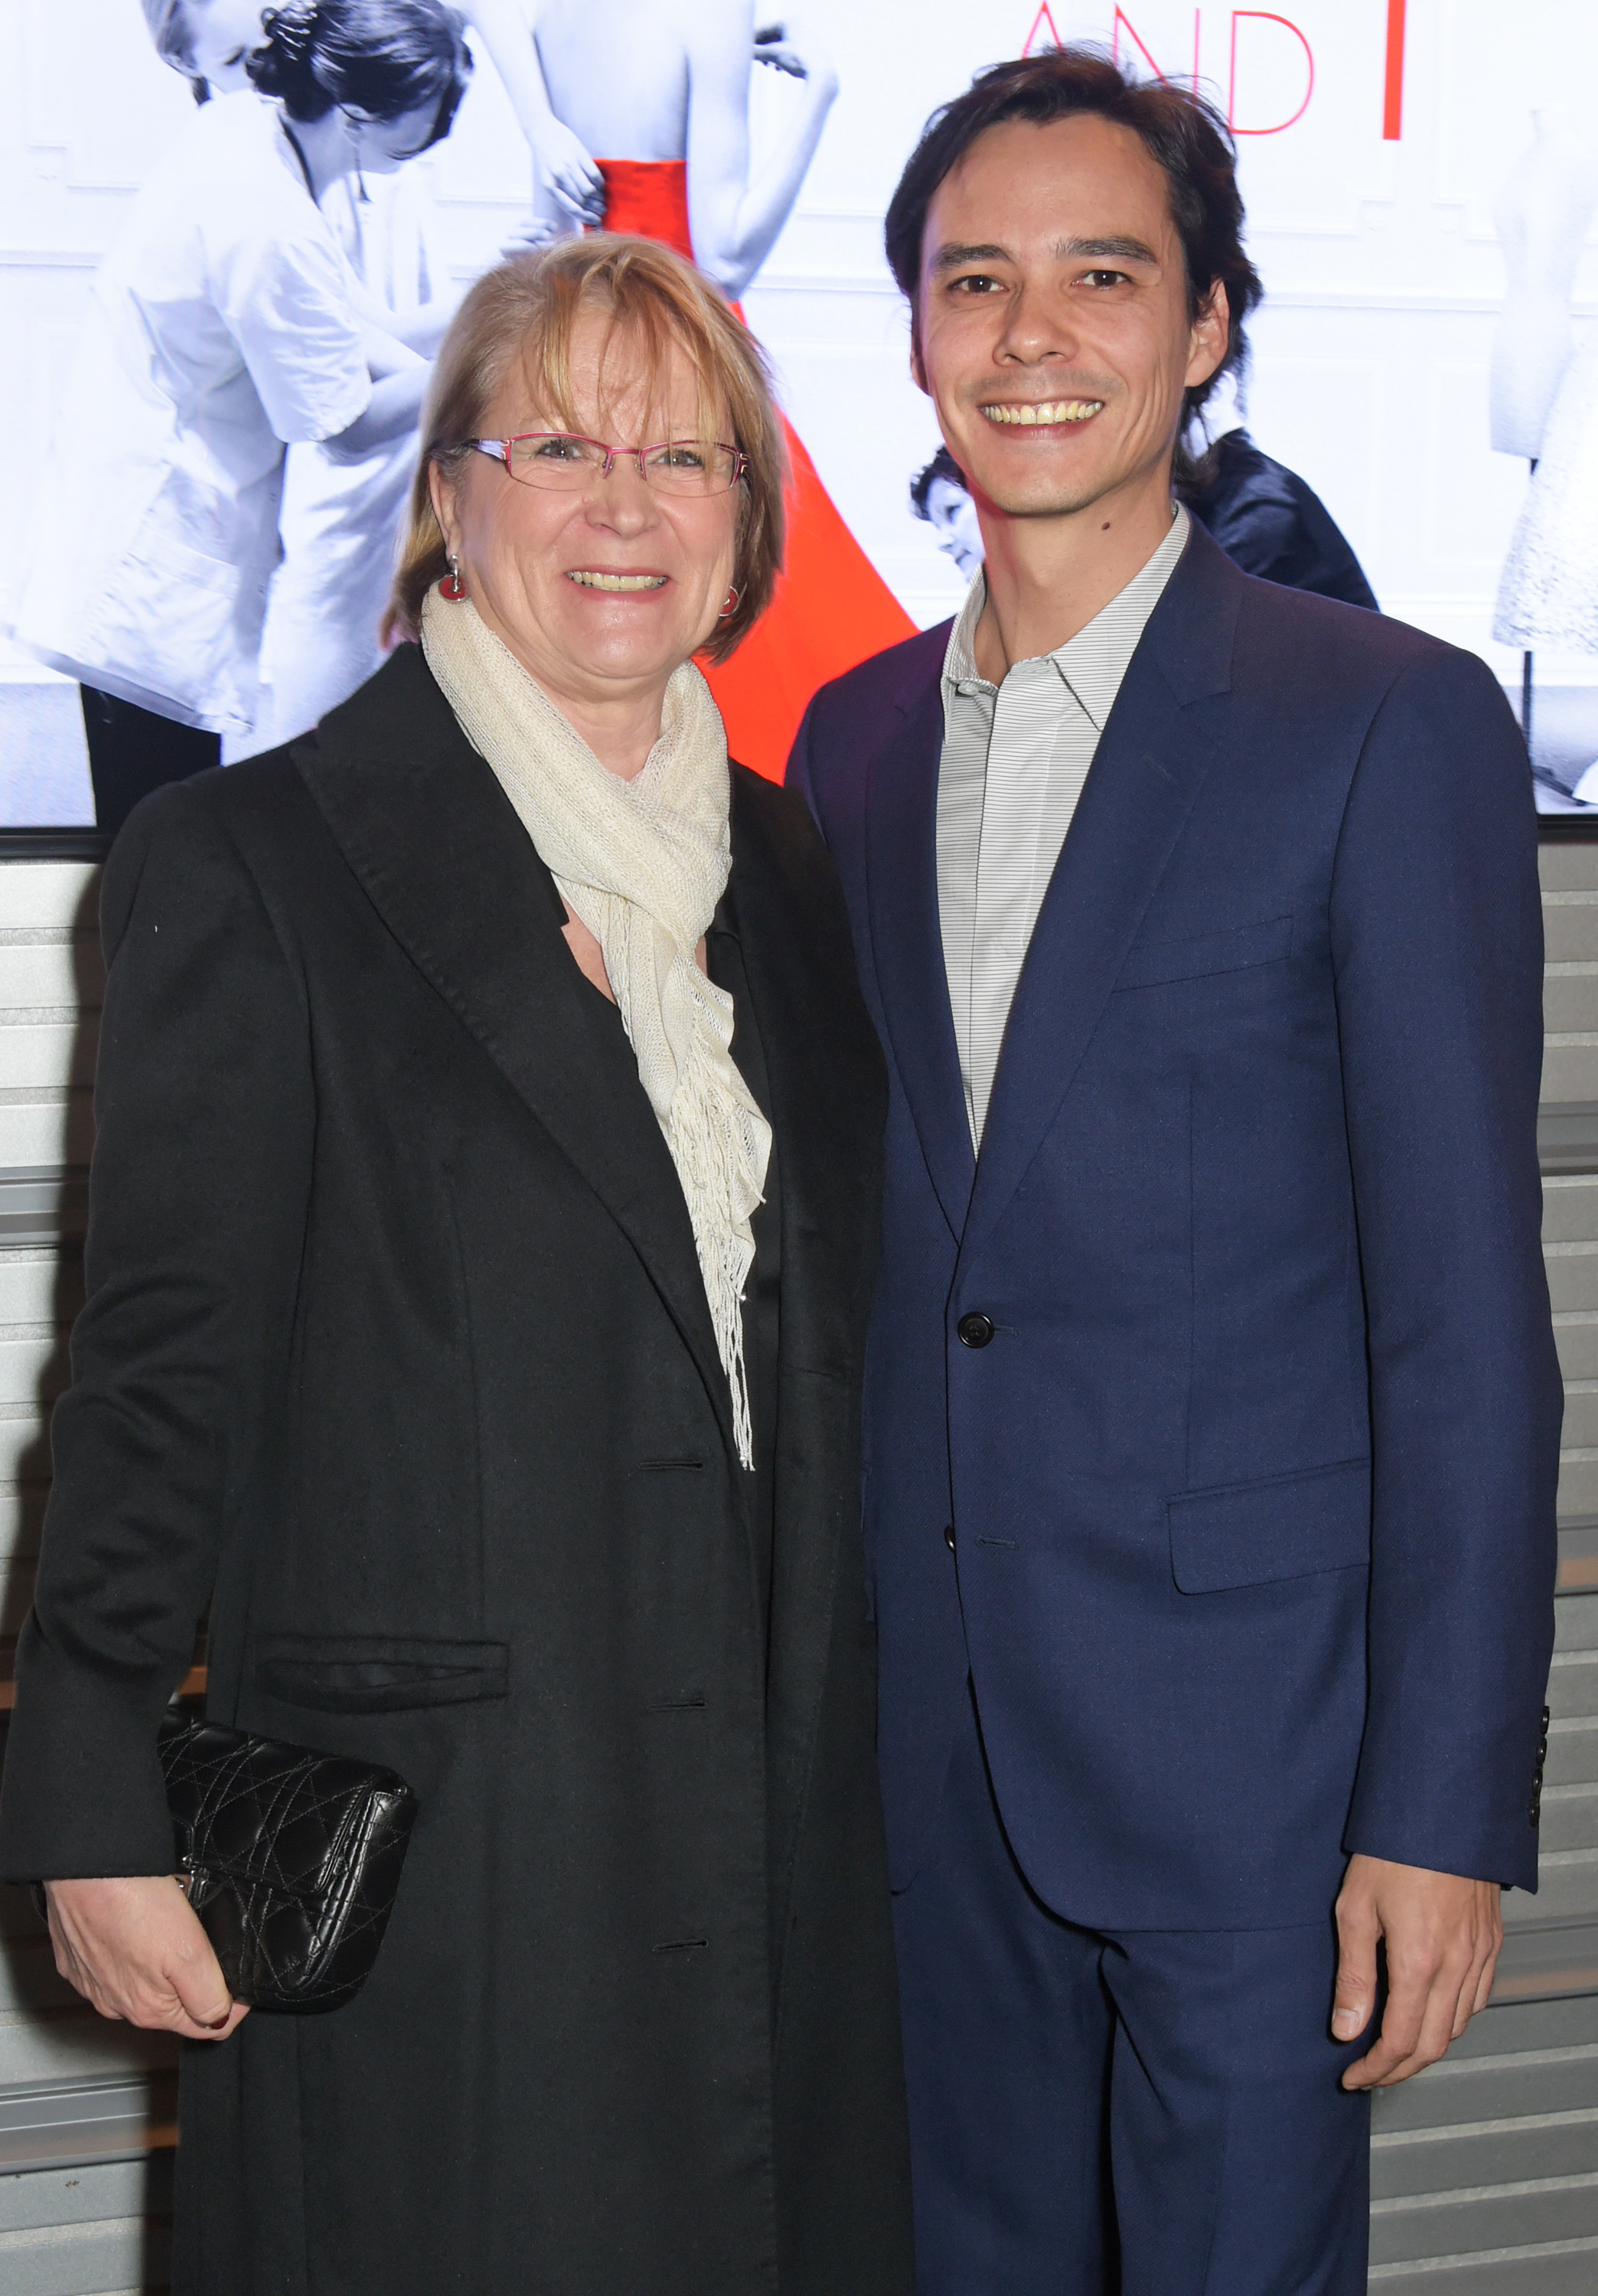 Monique Bailly & Frederic Tcheng.JPG